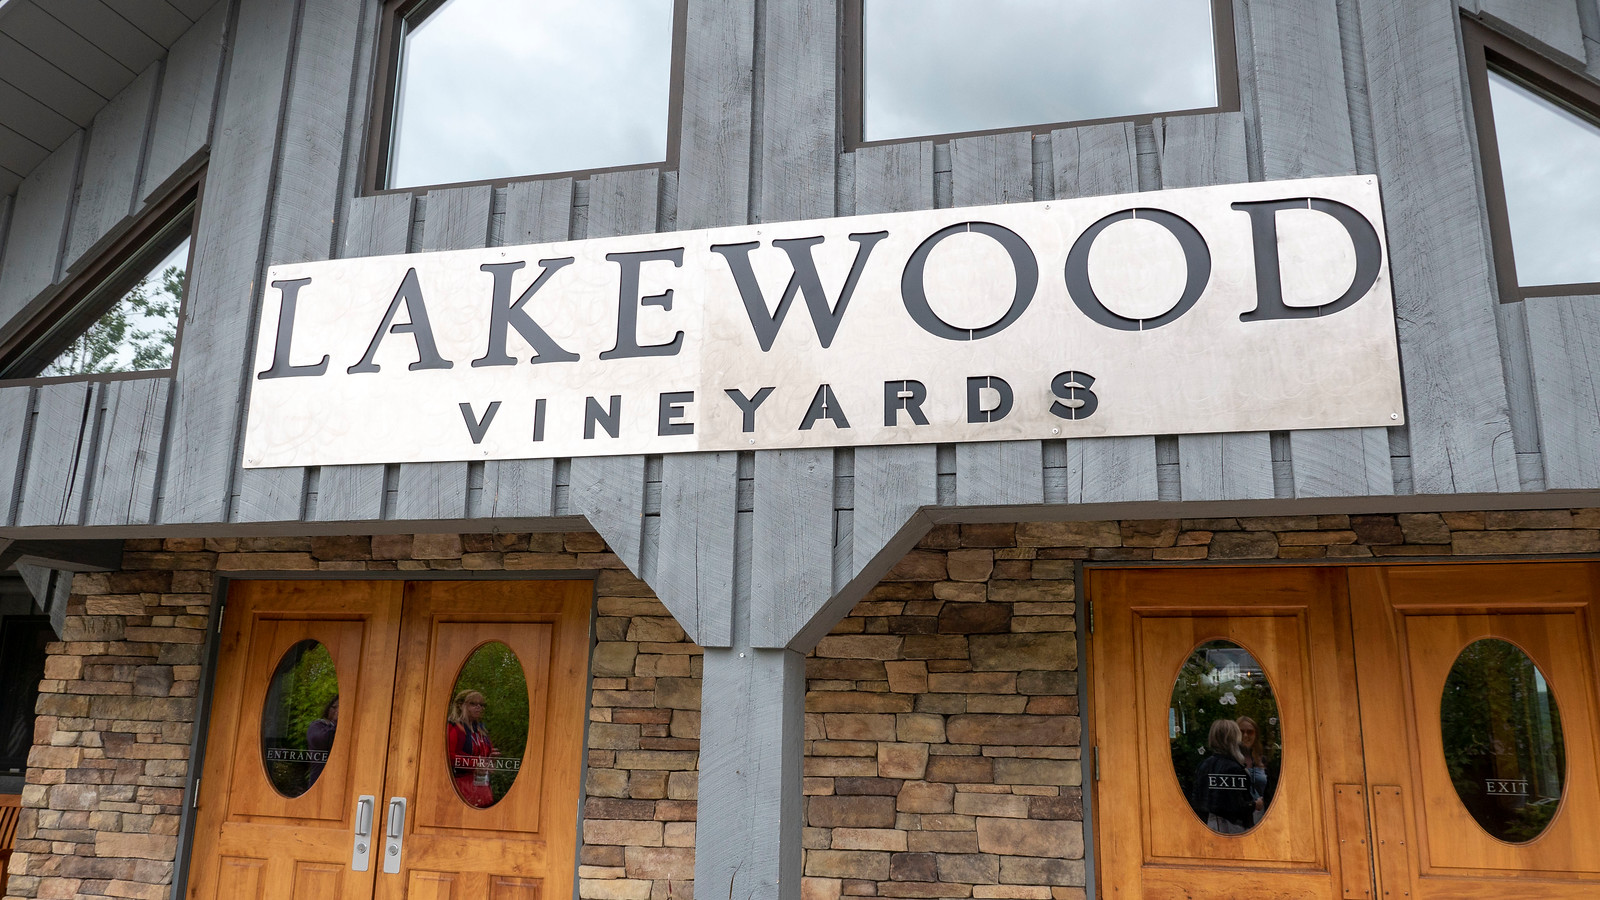 Vegan Wineries: 10 Best Wineries on Seneca Lake NY - Lakewood Vineyards